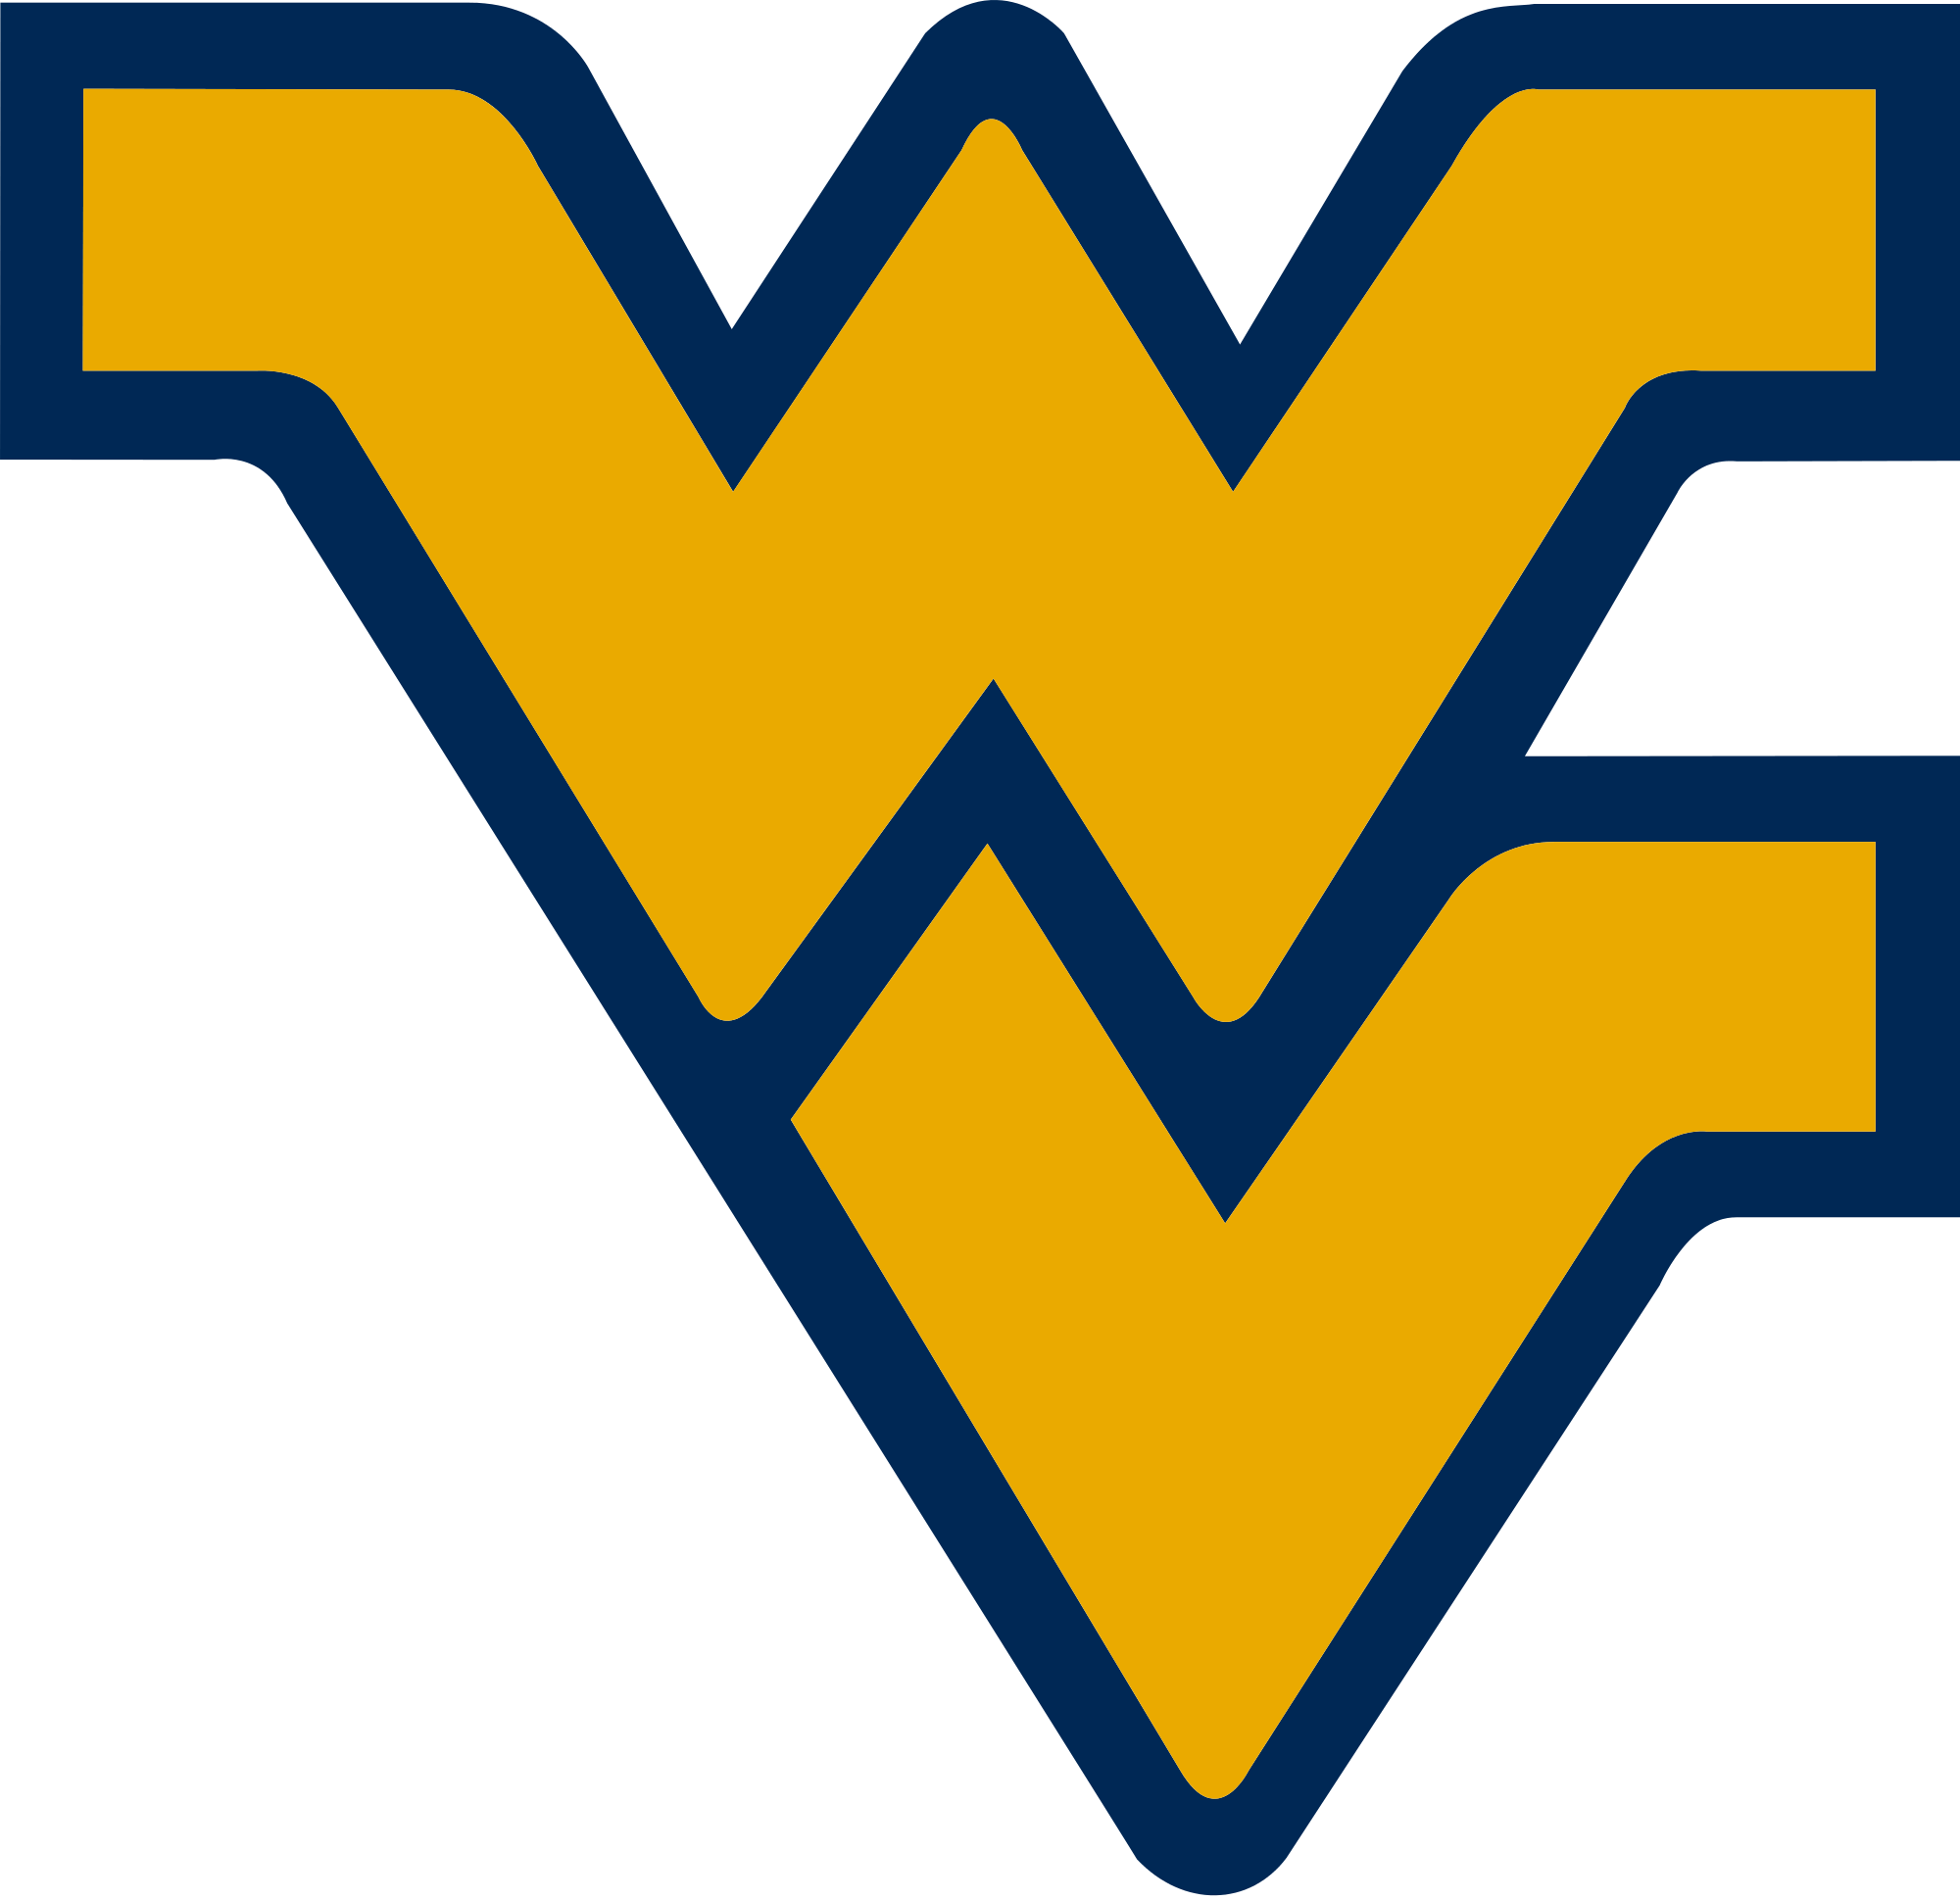 The Missouri Tigers vs. the West Virginia Mountaineers